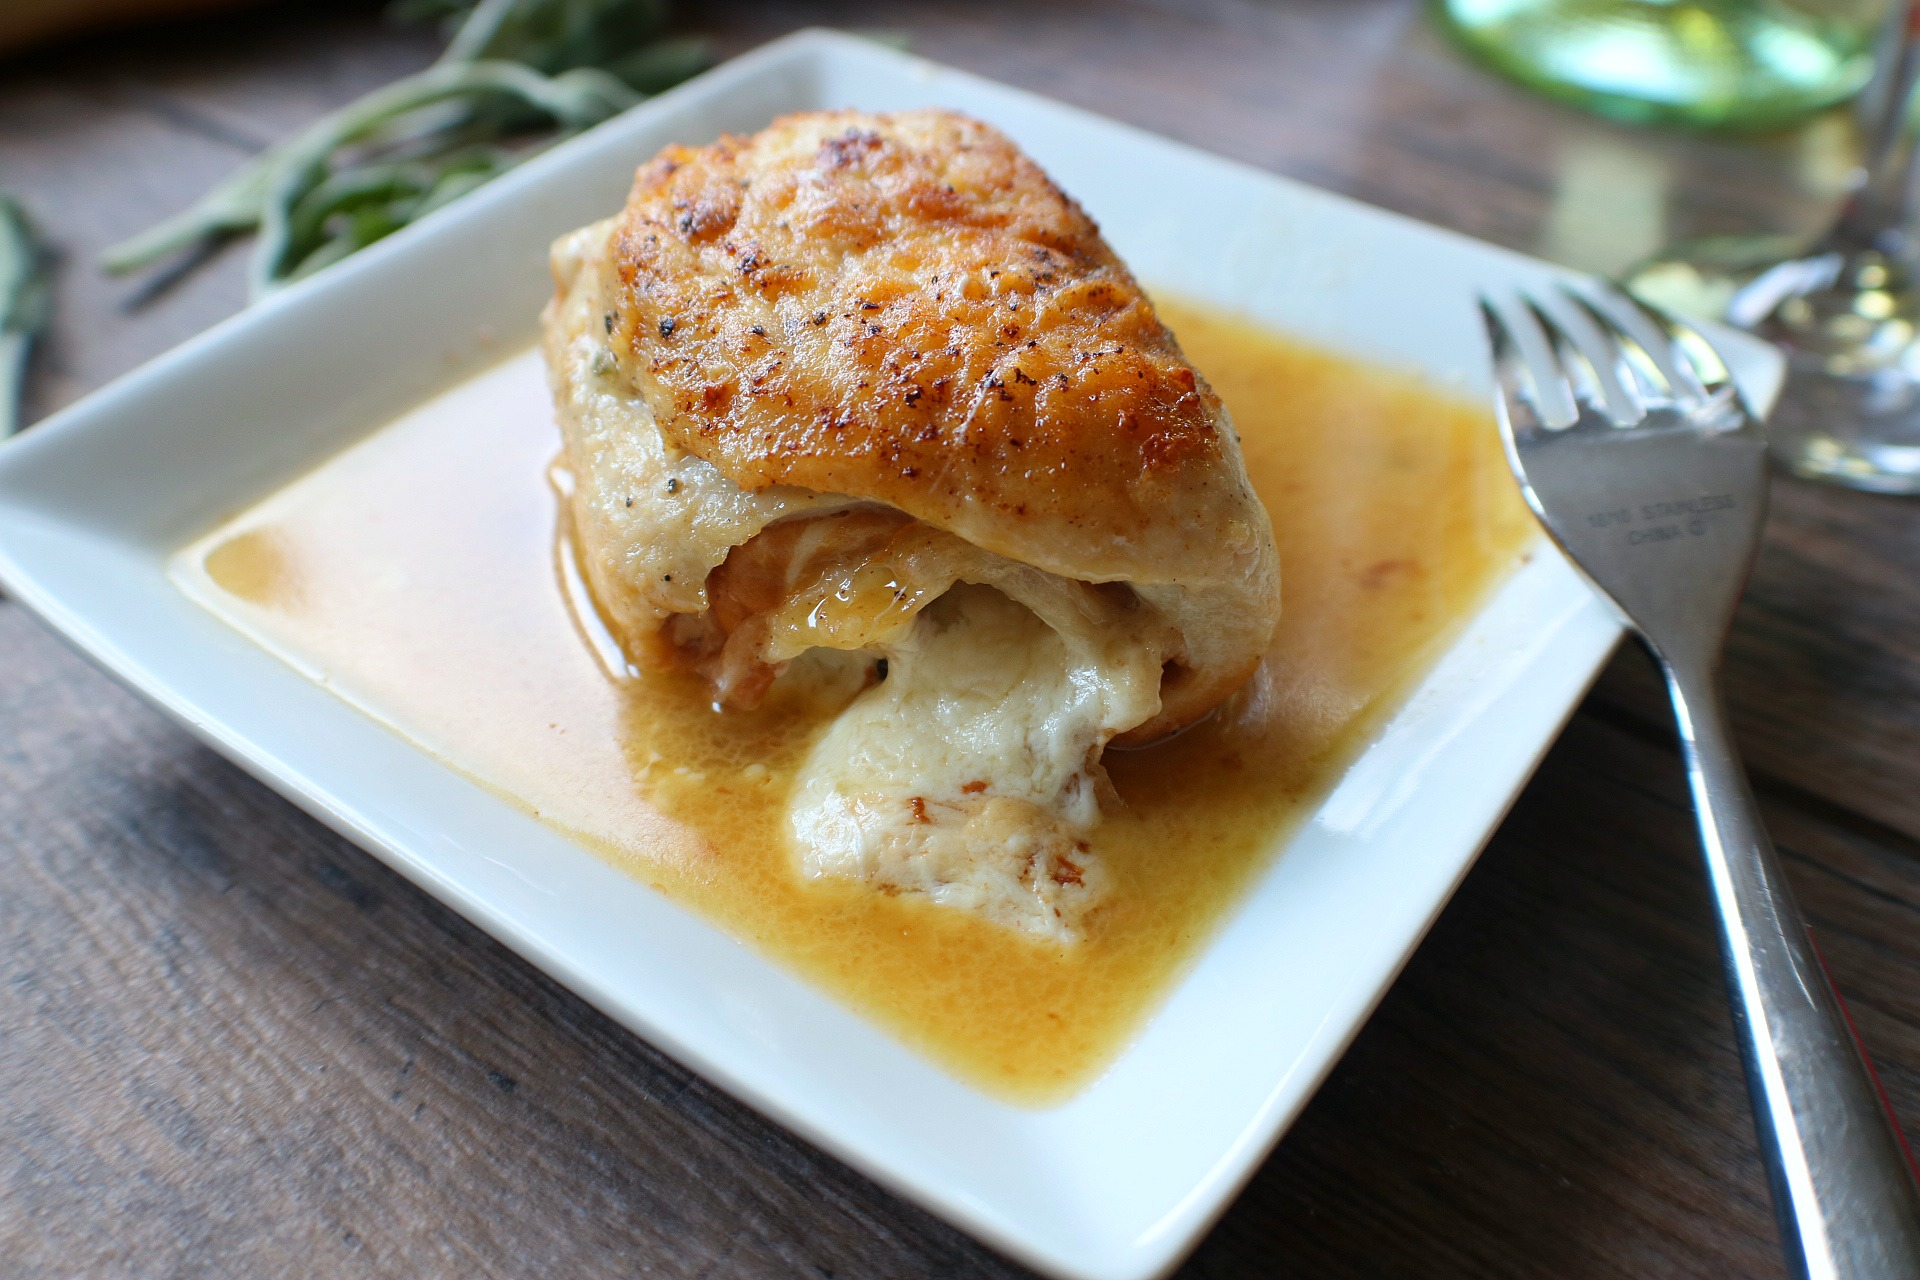 Rolled Chicken Saltimbocca in a white wine sauce